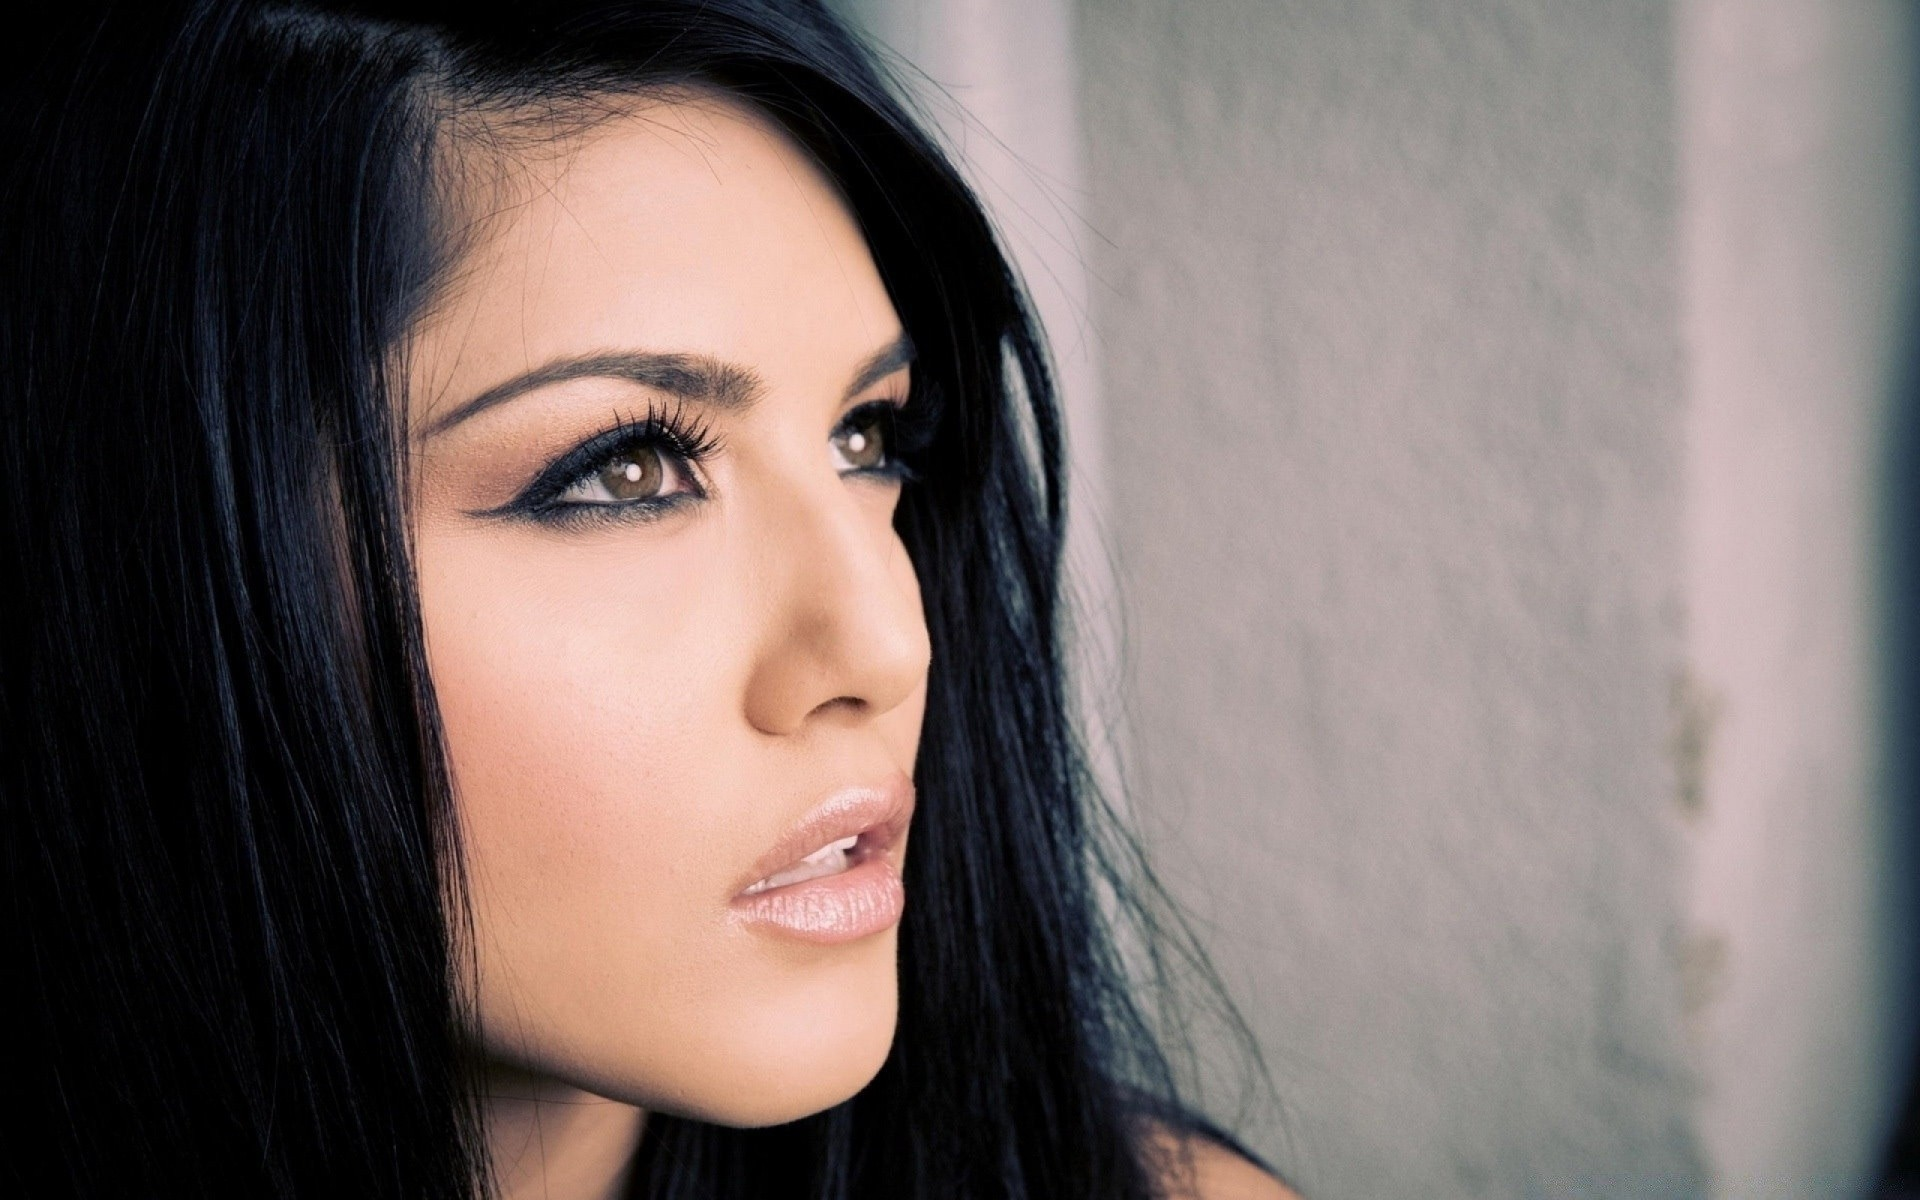 Sunny Leone Portrait Iphone Wallpapers For Free